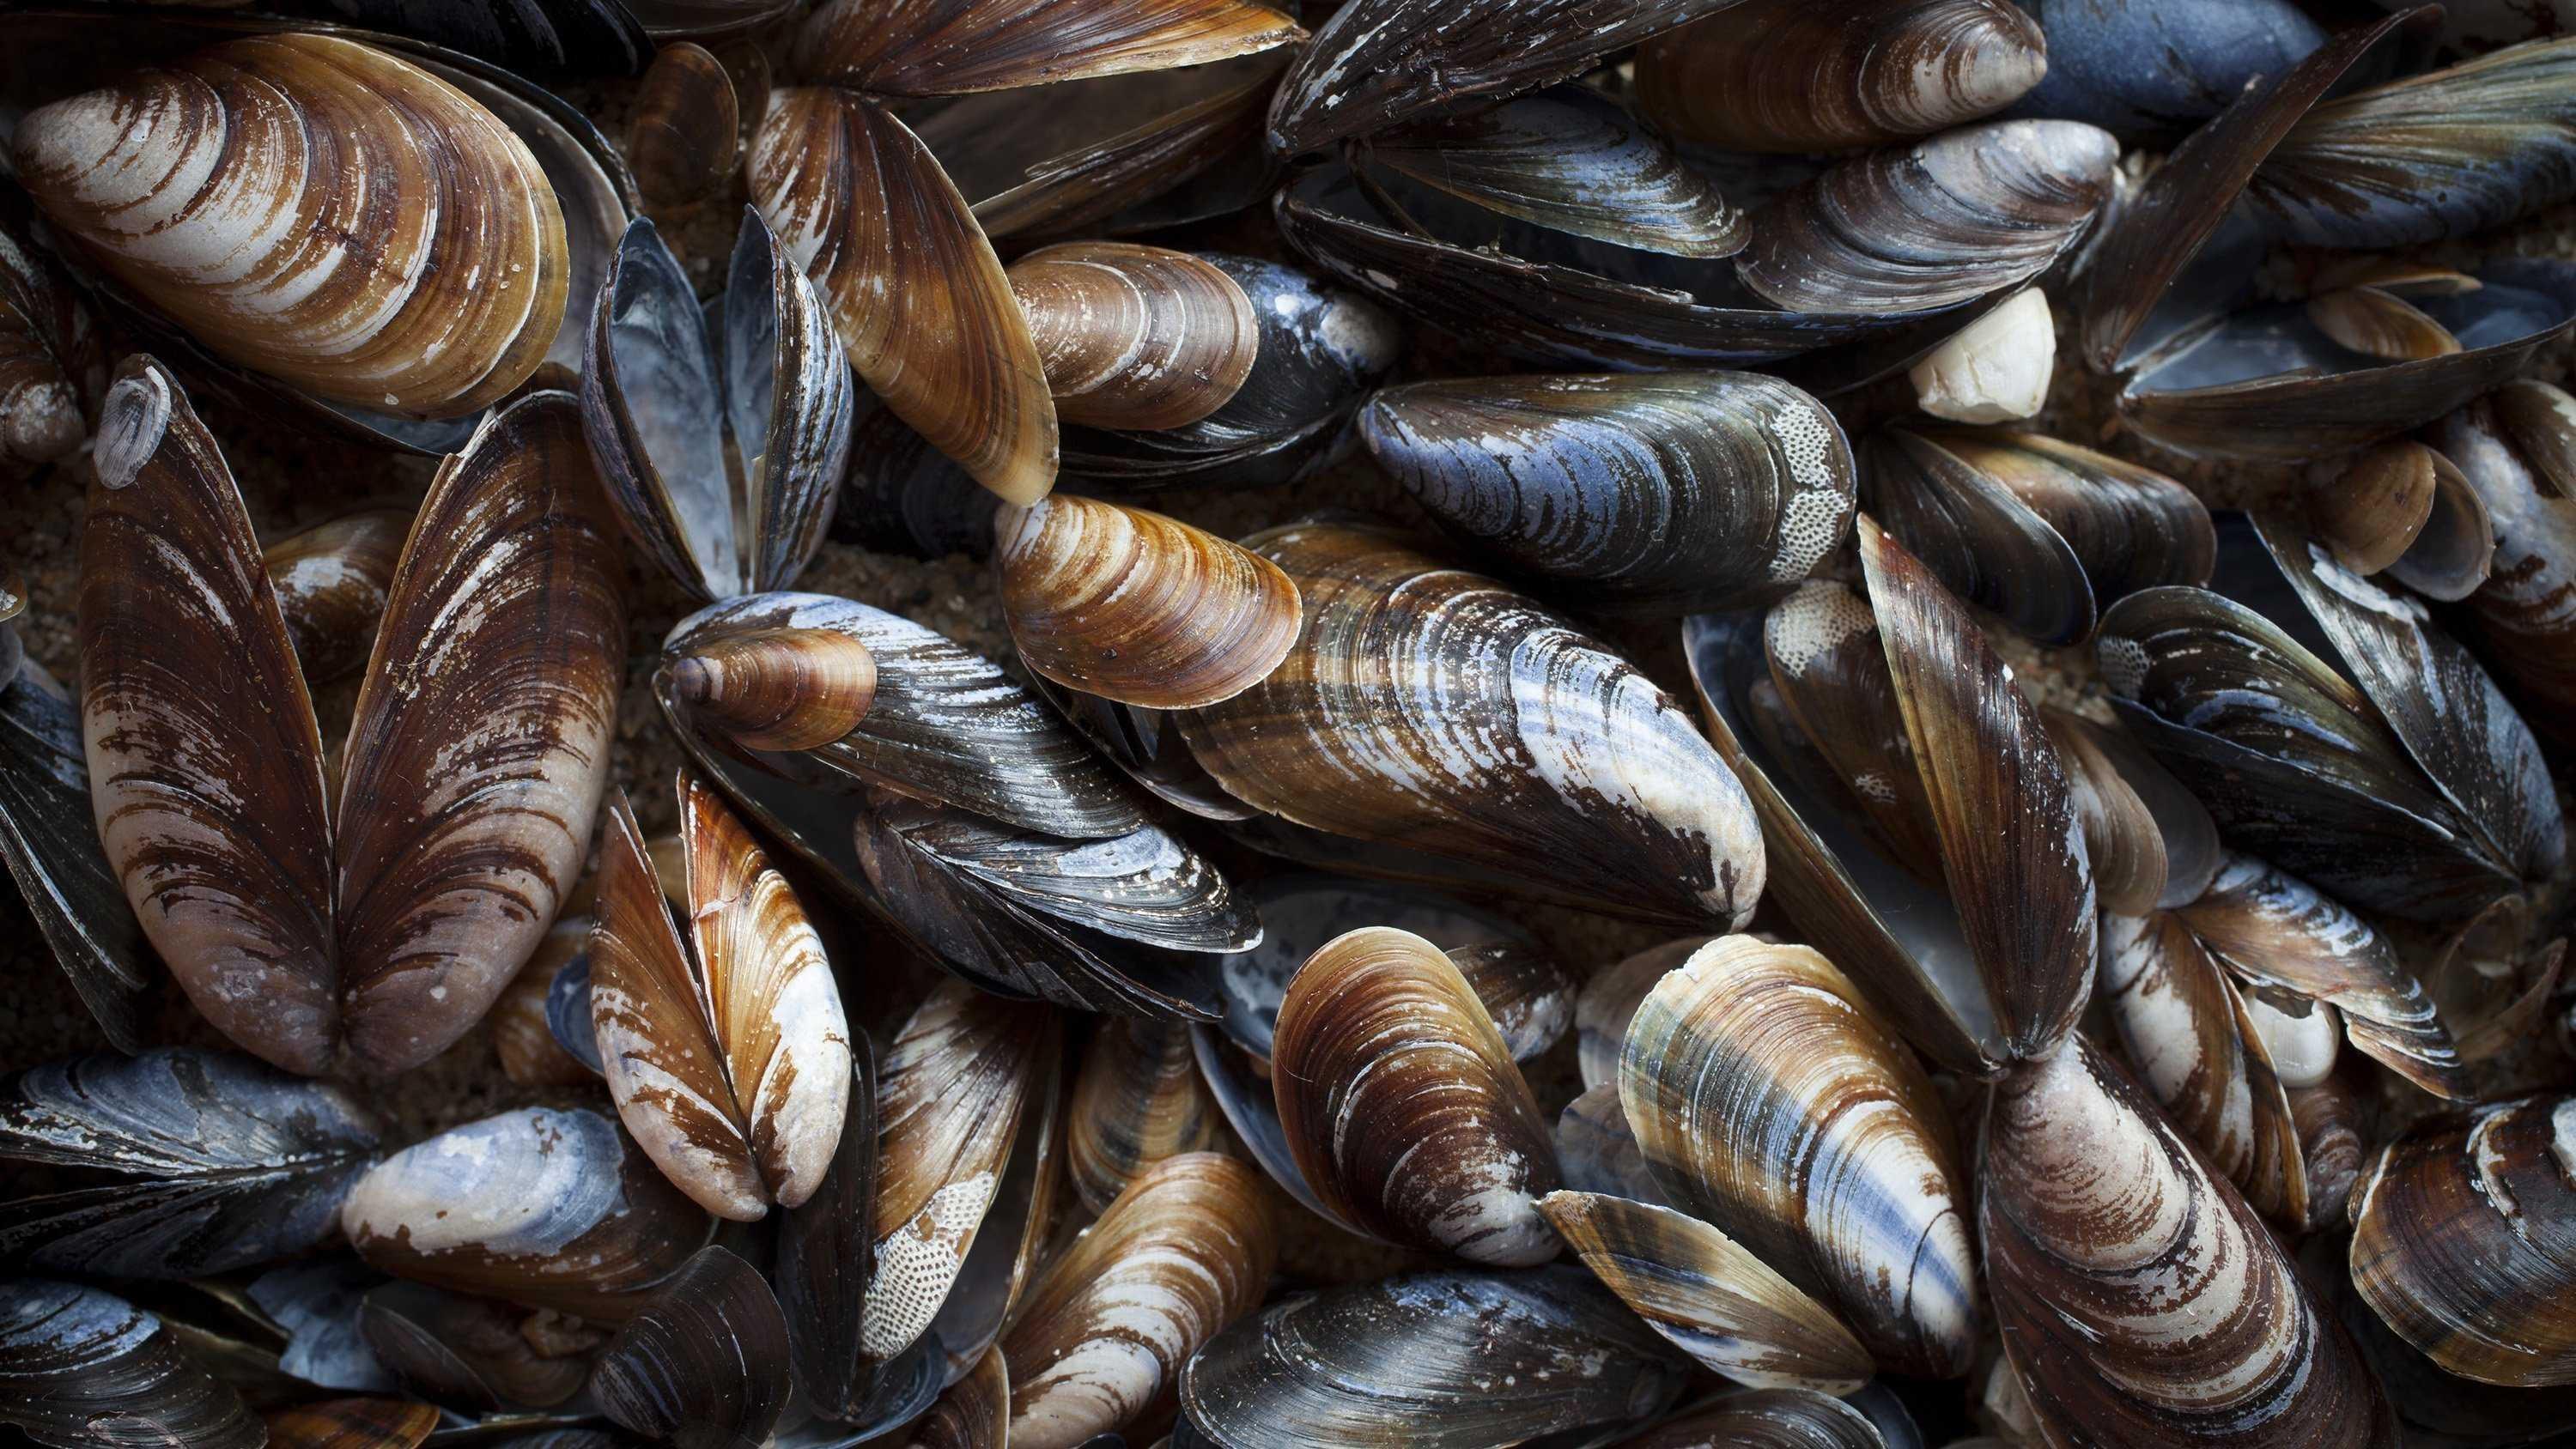 Mussels found in Washington inlet test positive for opioids, other drugs​